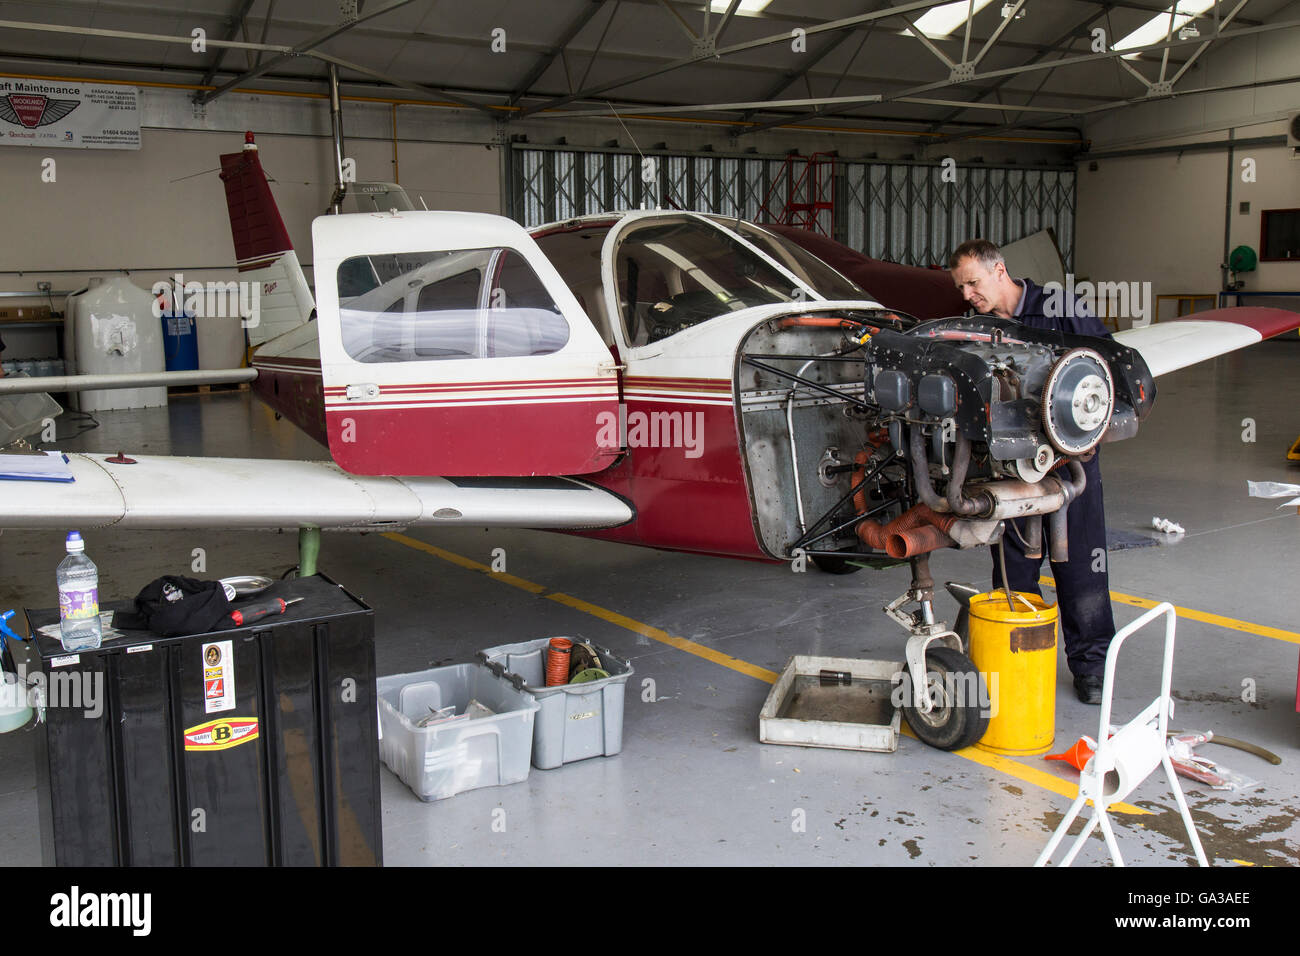 An aircraft engineer working on the engine of a light aircraft in a maintenance hangar. - Stock Image